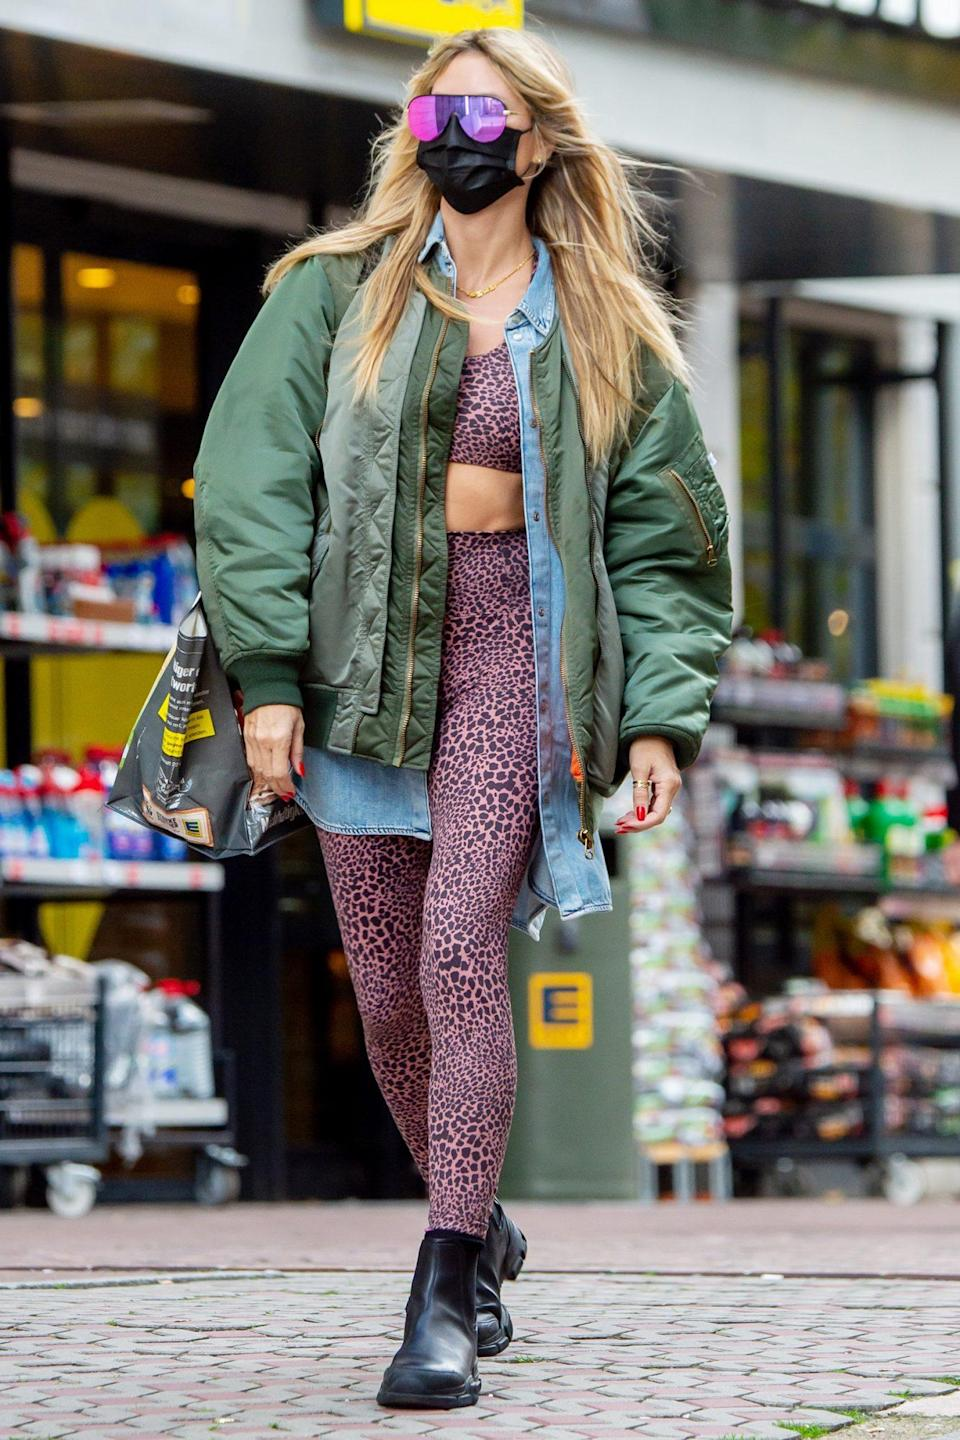 <p>Heidi Klum wears a green bomber jacket over a leopard-print workout set to go grocery shopping with her mom Erna in Berlin on Wednesday. </p>